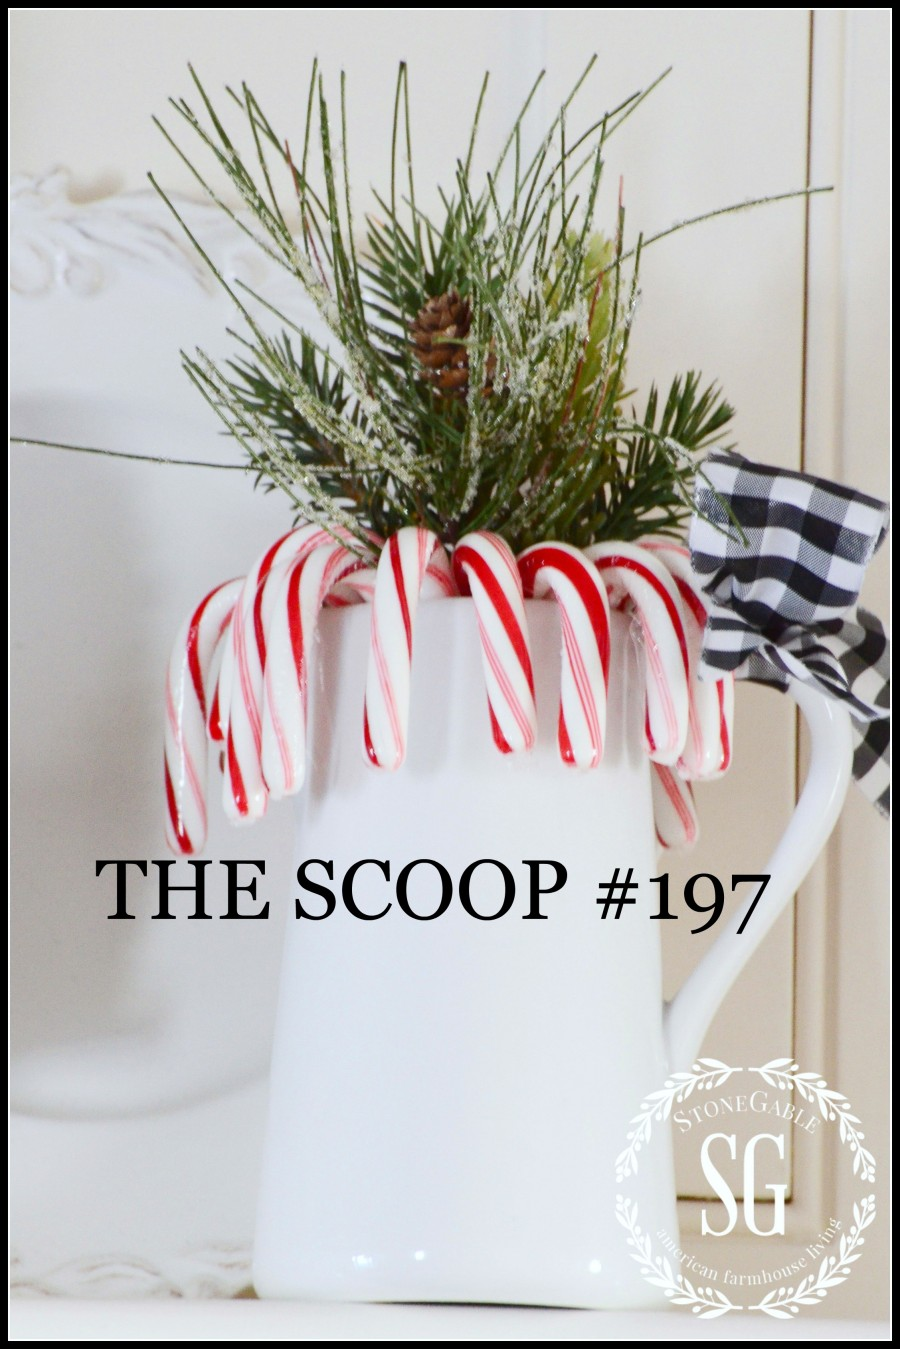 THE SCOOP #197-stonegableblog.com